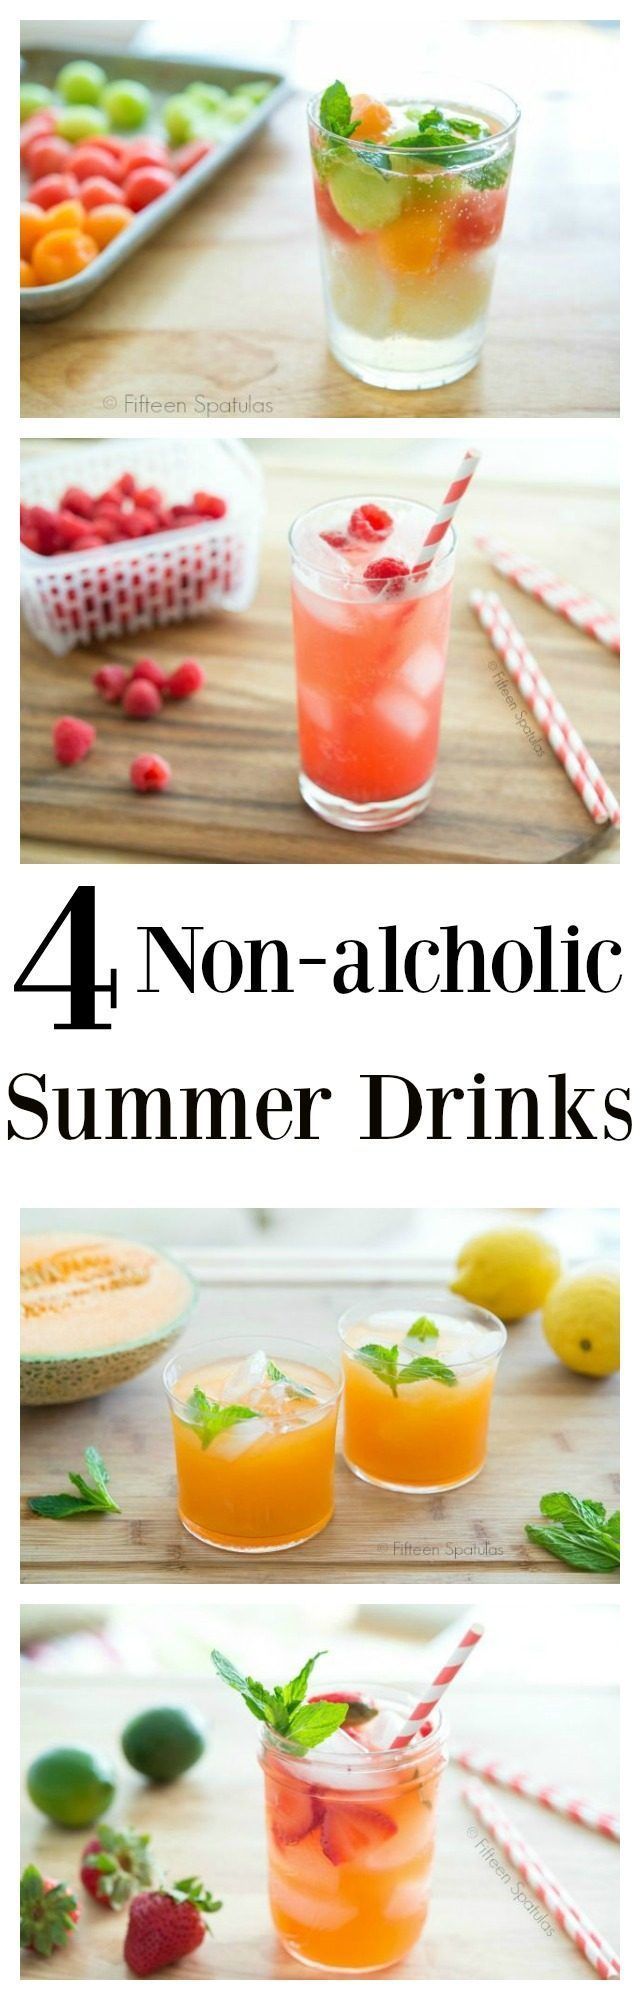 25 best ideas about colorful drinks on pinterest for Refreshing drink recipes non alcoholic